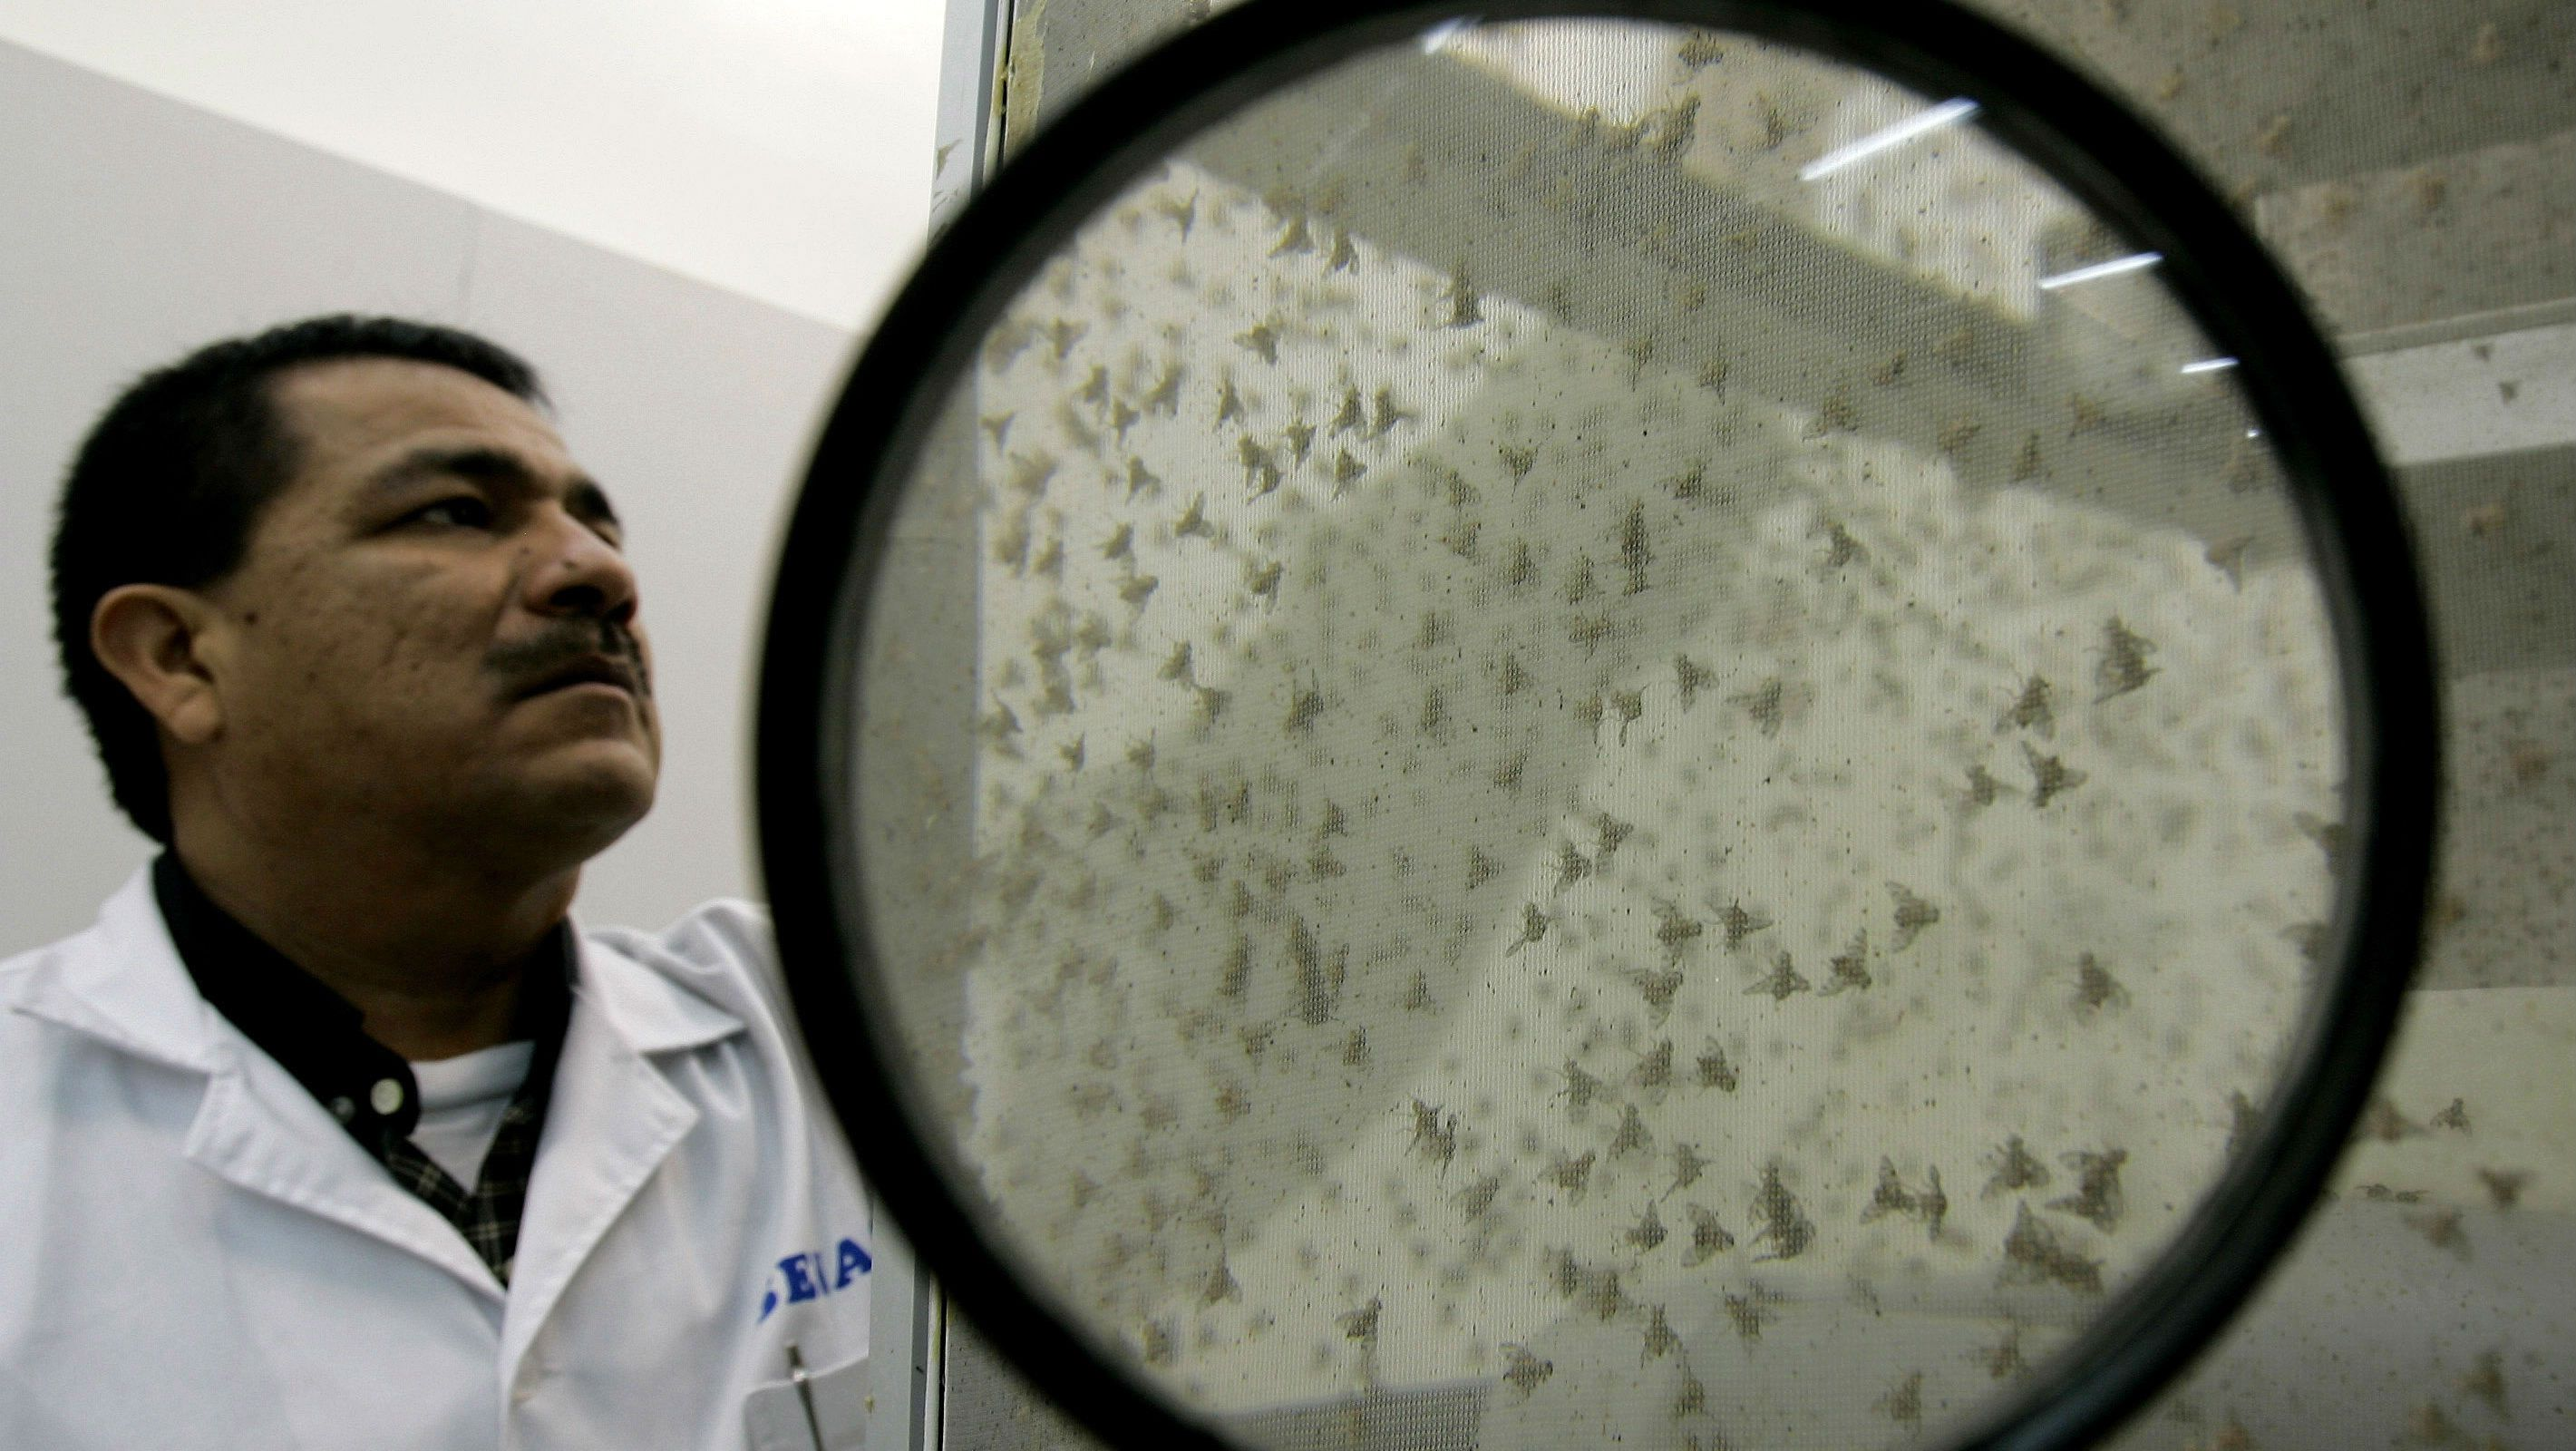 An expert observes fruit flies at the Agrarian Health Service in Lima, Peru on Friday, Sept. 22, 2006. Peru is intensifying its fight against the fruit fly, using radiation to sterilize millions of these insects to avoid their propagation and millions of dollars in damages. (AP Photo/Martin Mejia)